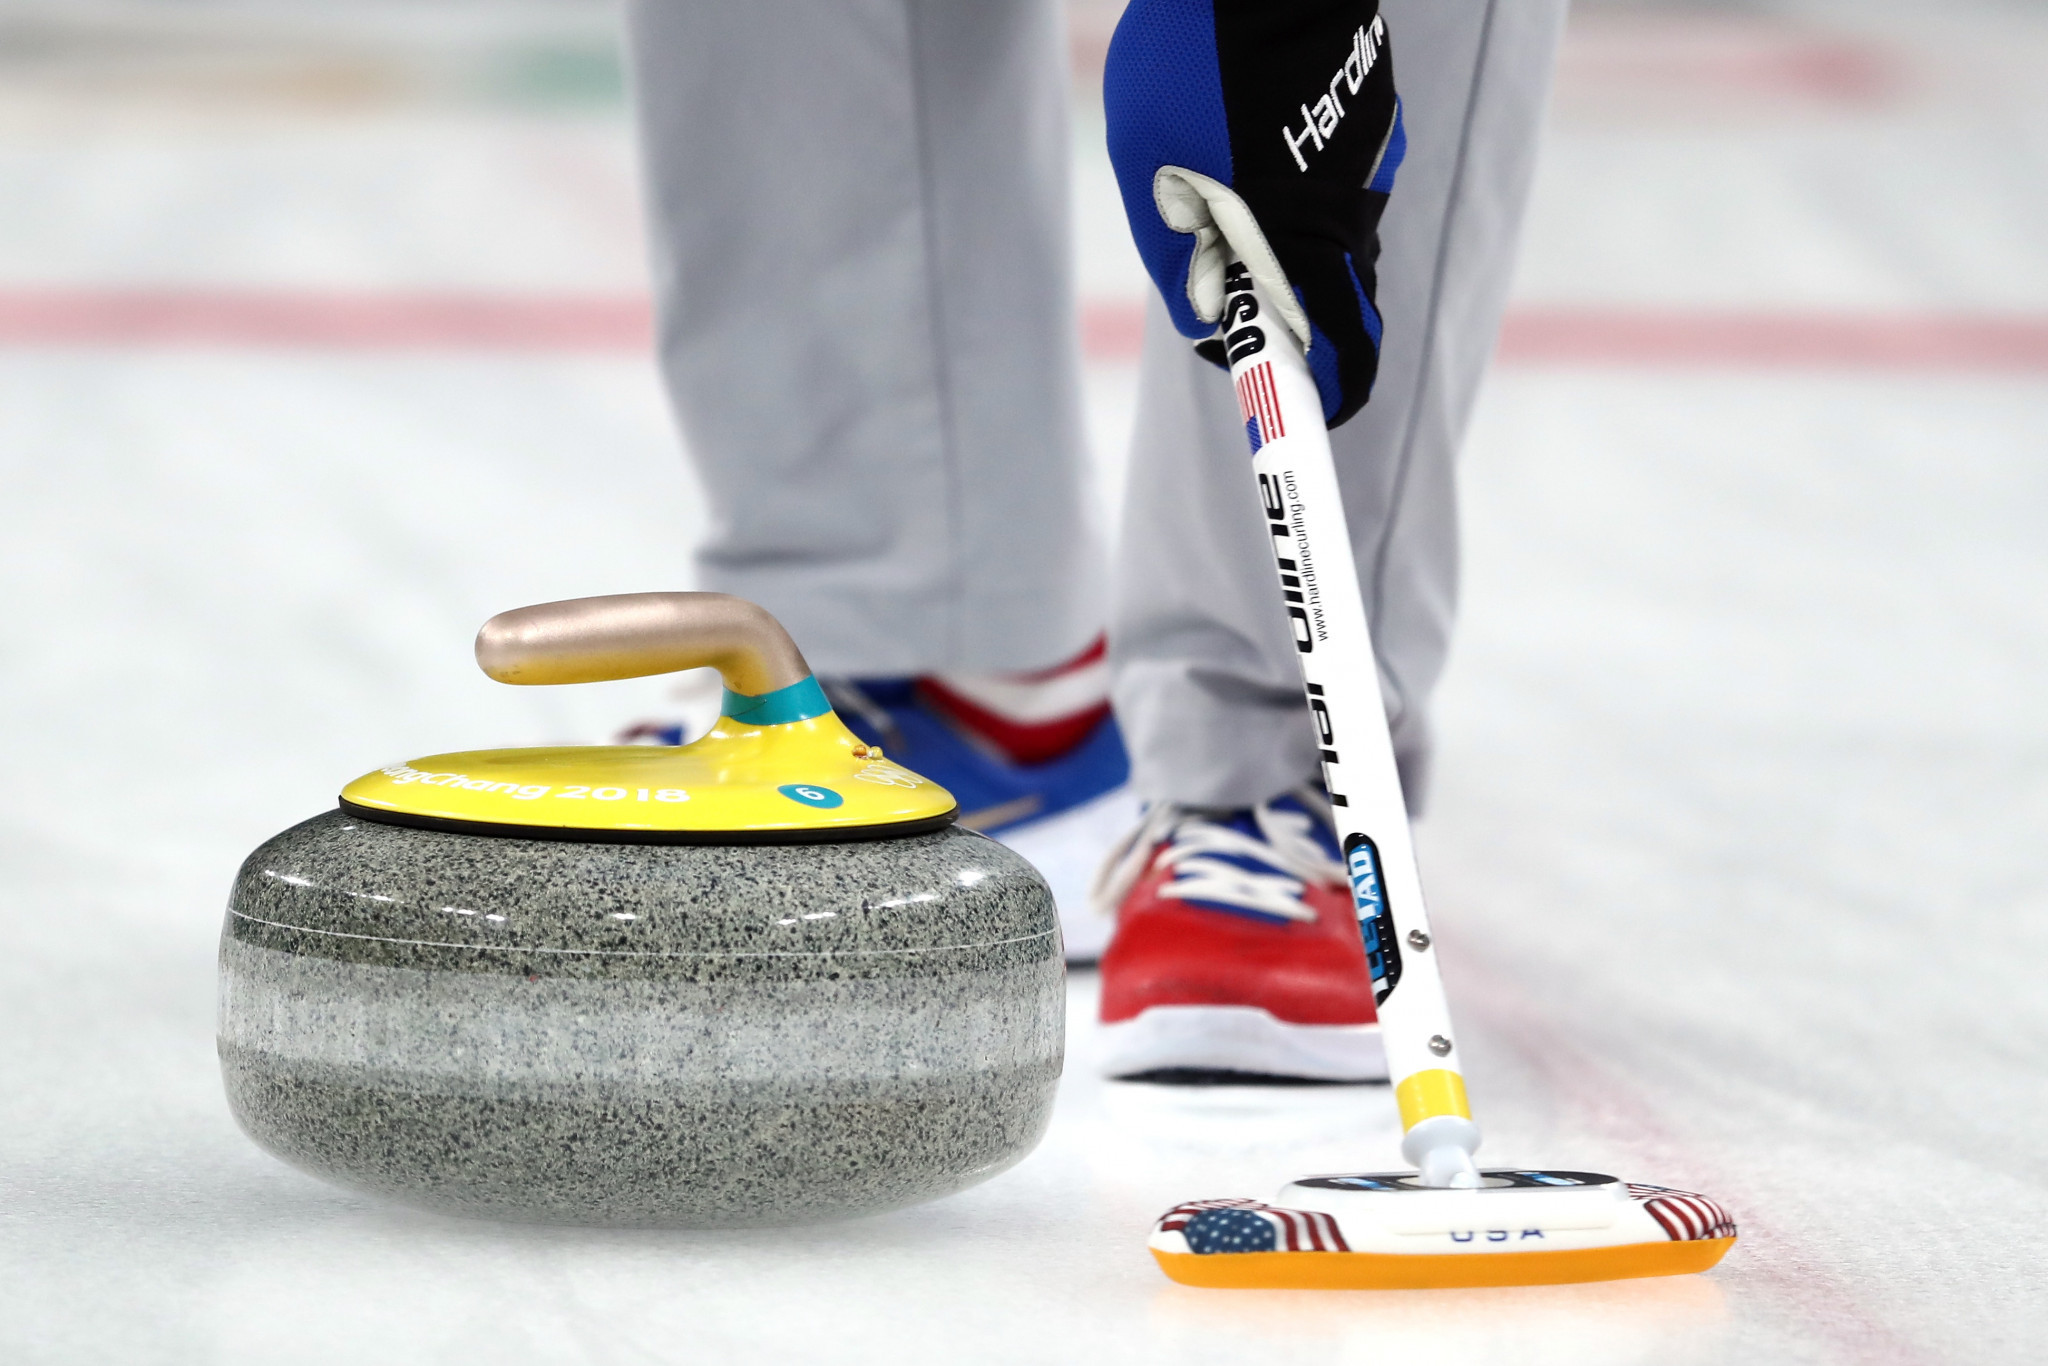 Czech Republic, Spain and Turkey continue perfect starts at curling Pre-Olympic Qualification Event